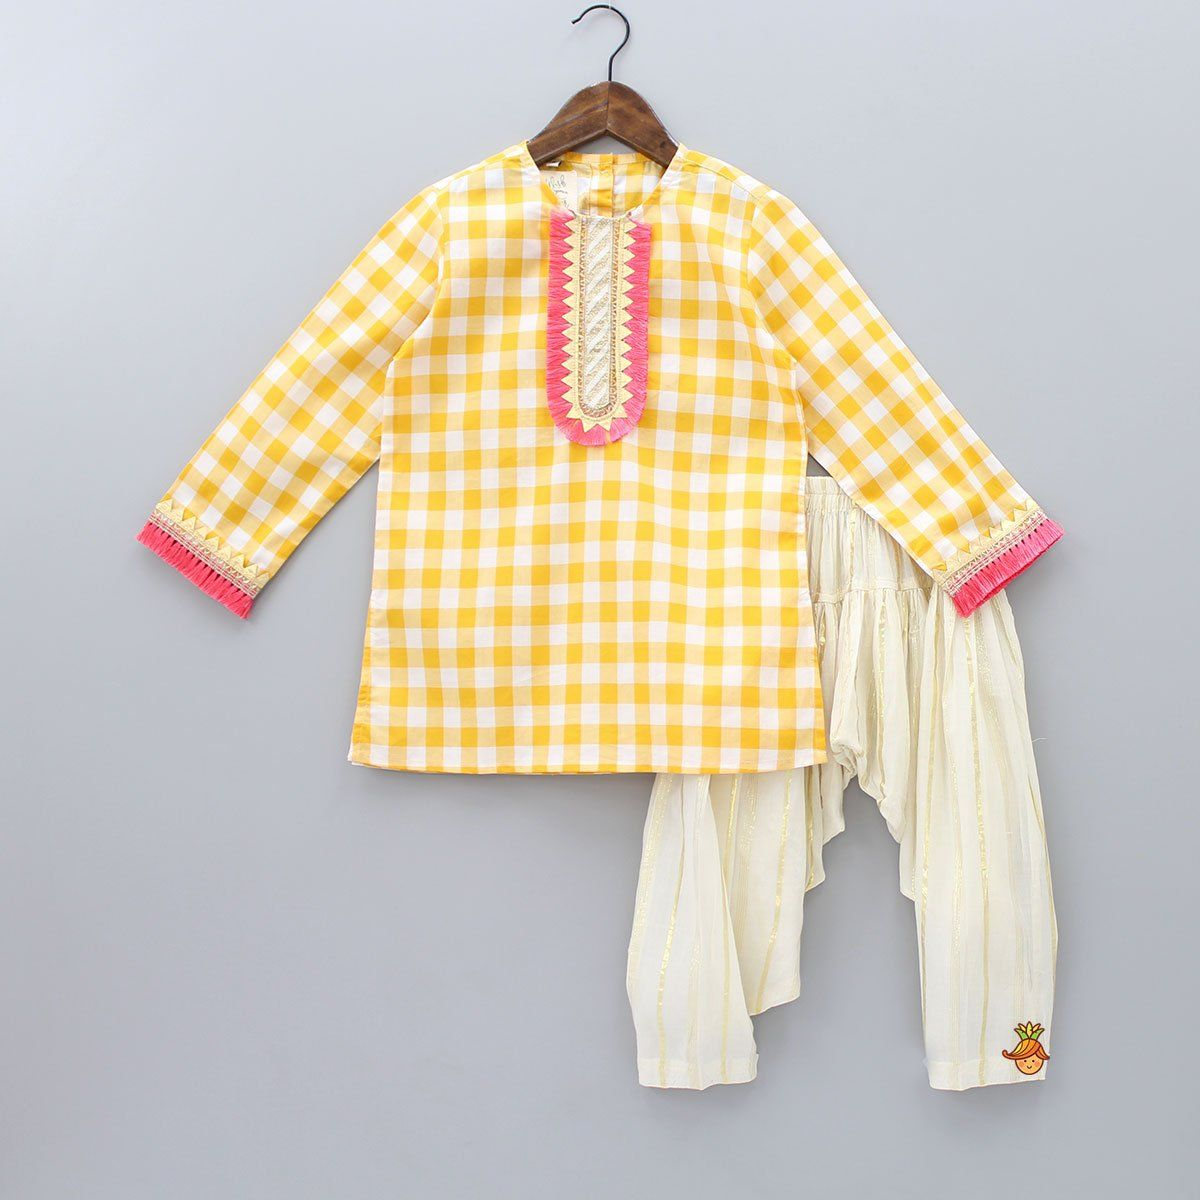 Dhotis & Patialas - Yellow and white kurta with checks print all over, Kurta with tassels and lace attached at yoke and sleeves, Kurta with back button opening, Off-white pataila with golden stripes on it, Patiala with elastic at waist